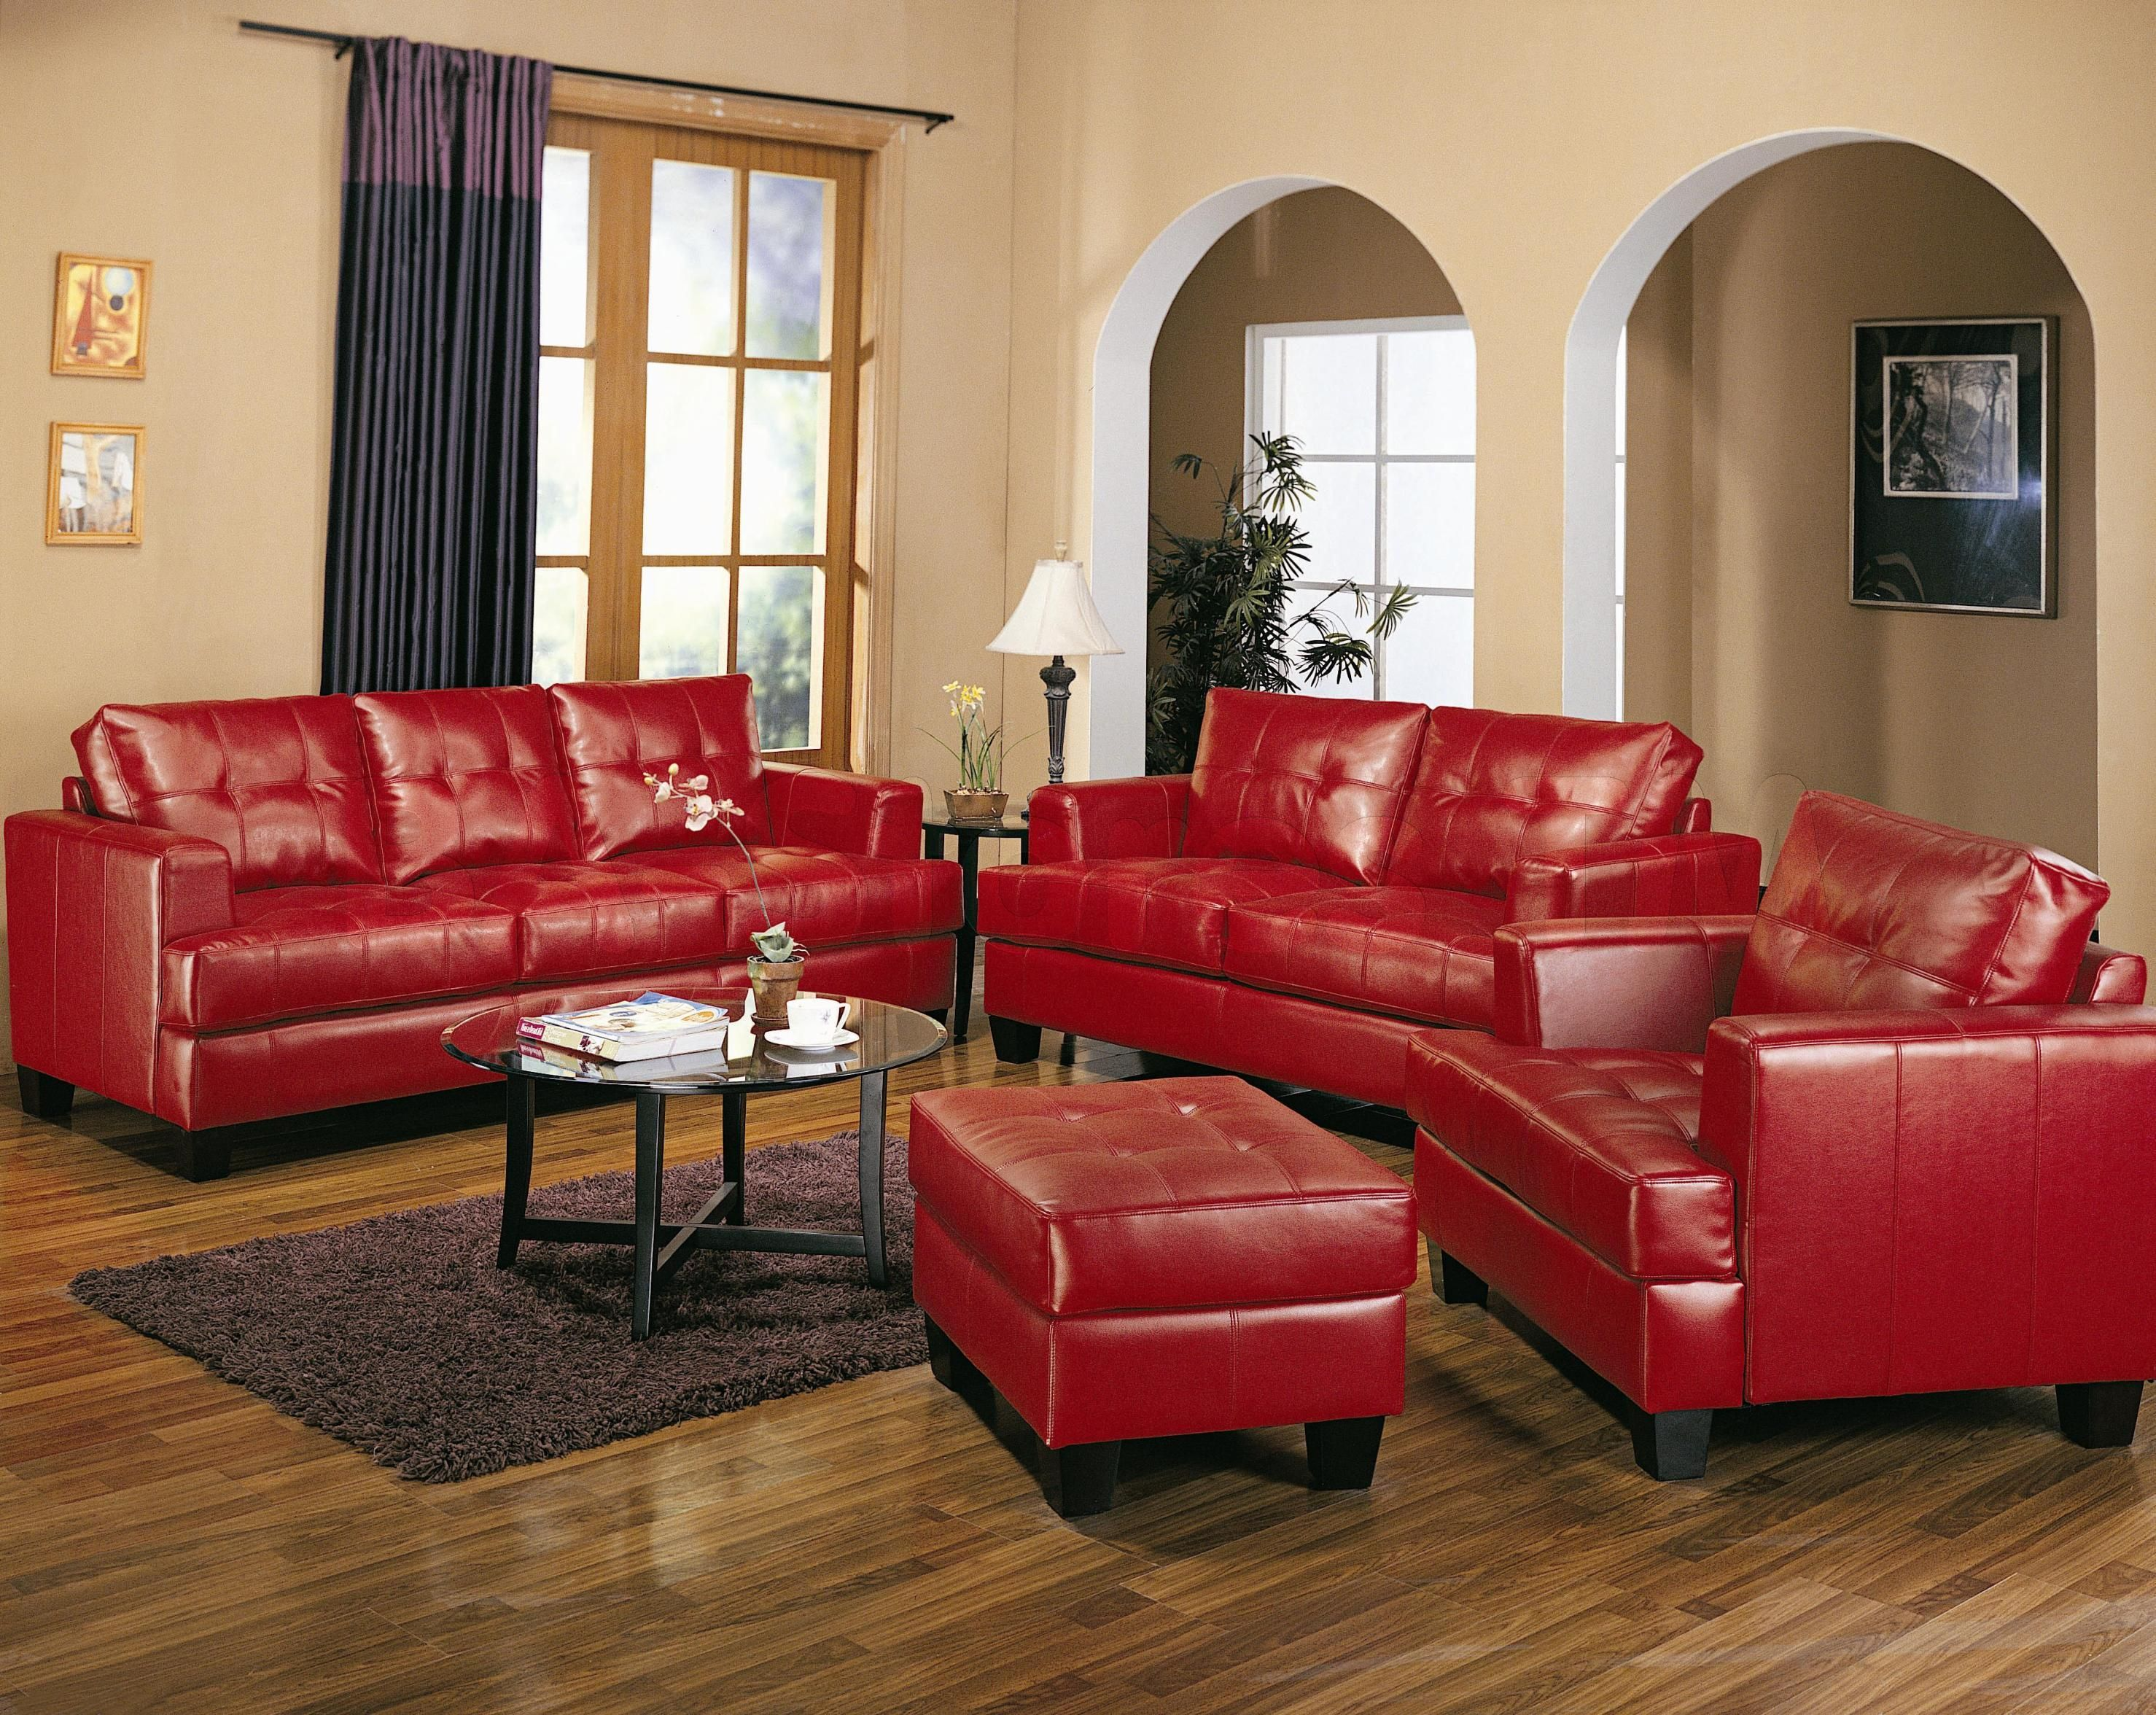 Interior Design Sofas Living Room 1000 Ideas About Red Couch Decorating On Pinterest Red Couch